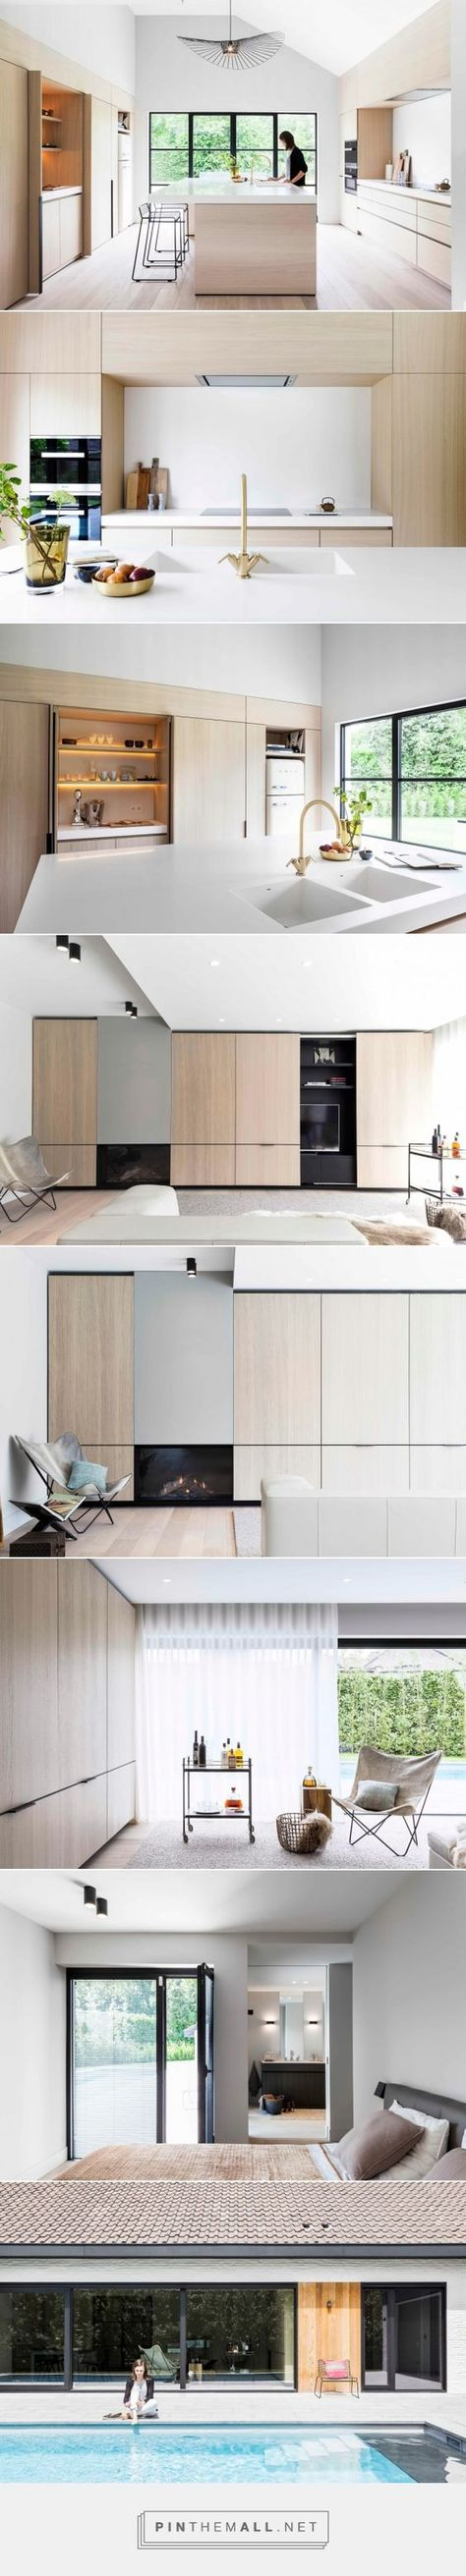 9 Best Trends in Kitchen Design Ideas for 2018 [No. 7 Very Nice ...